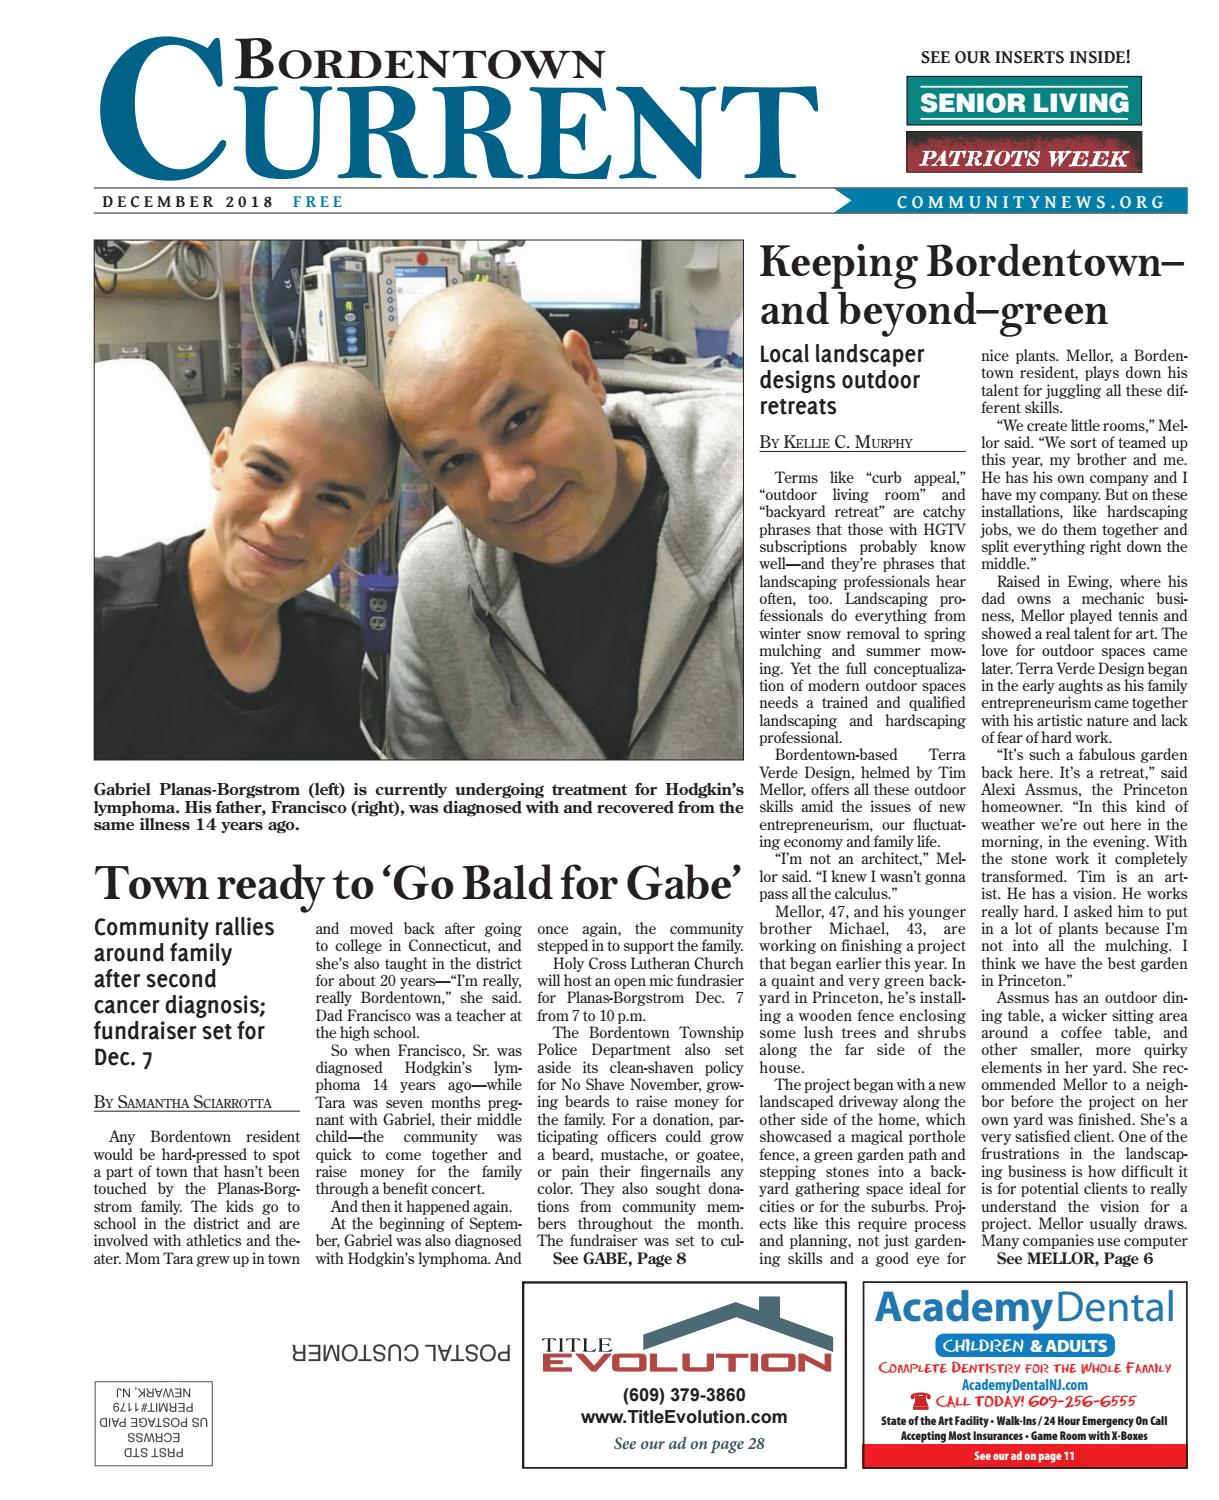 Bordentown Current | December 2018 by Community News Service